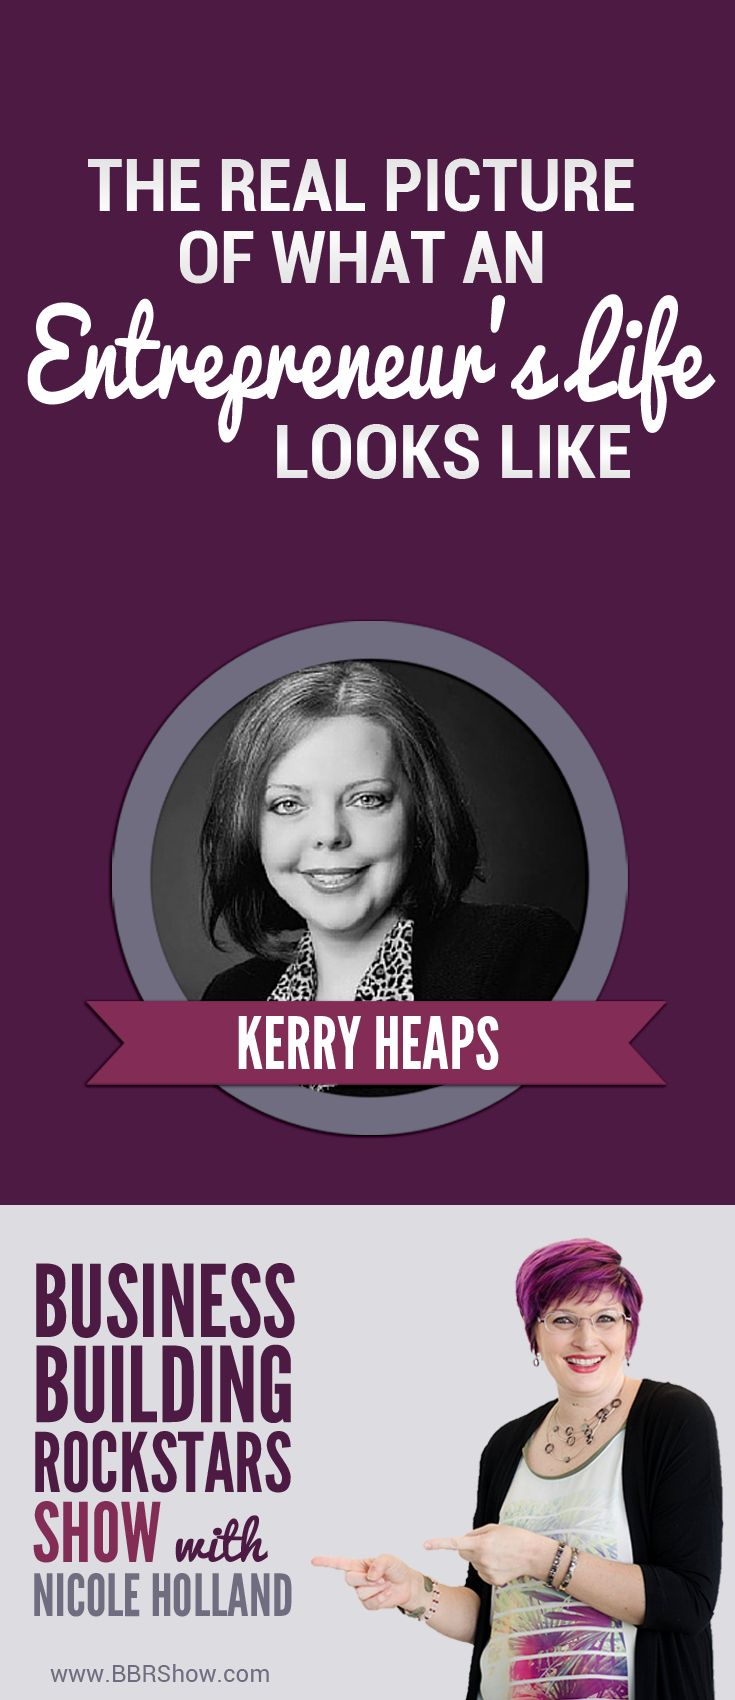 Kerry Heaps On The Real Picture Of What An Entrepreneur's Life Looks Like  Kerry Heaps is the Founder and President of Kerry's Network, Inc., a marketing organization that provides Business-to-Business Marketing services. She is also the host of Strictly Marketing Talk Radio and publisher of Strictly Marketing Magazine.   Learn more: http://bbrshow.com/podcast/054/